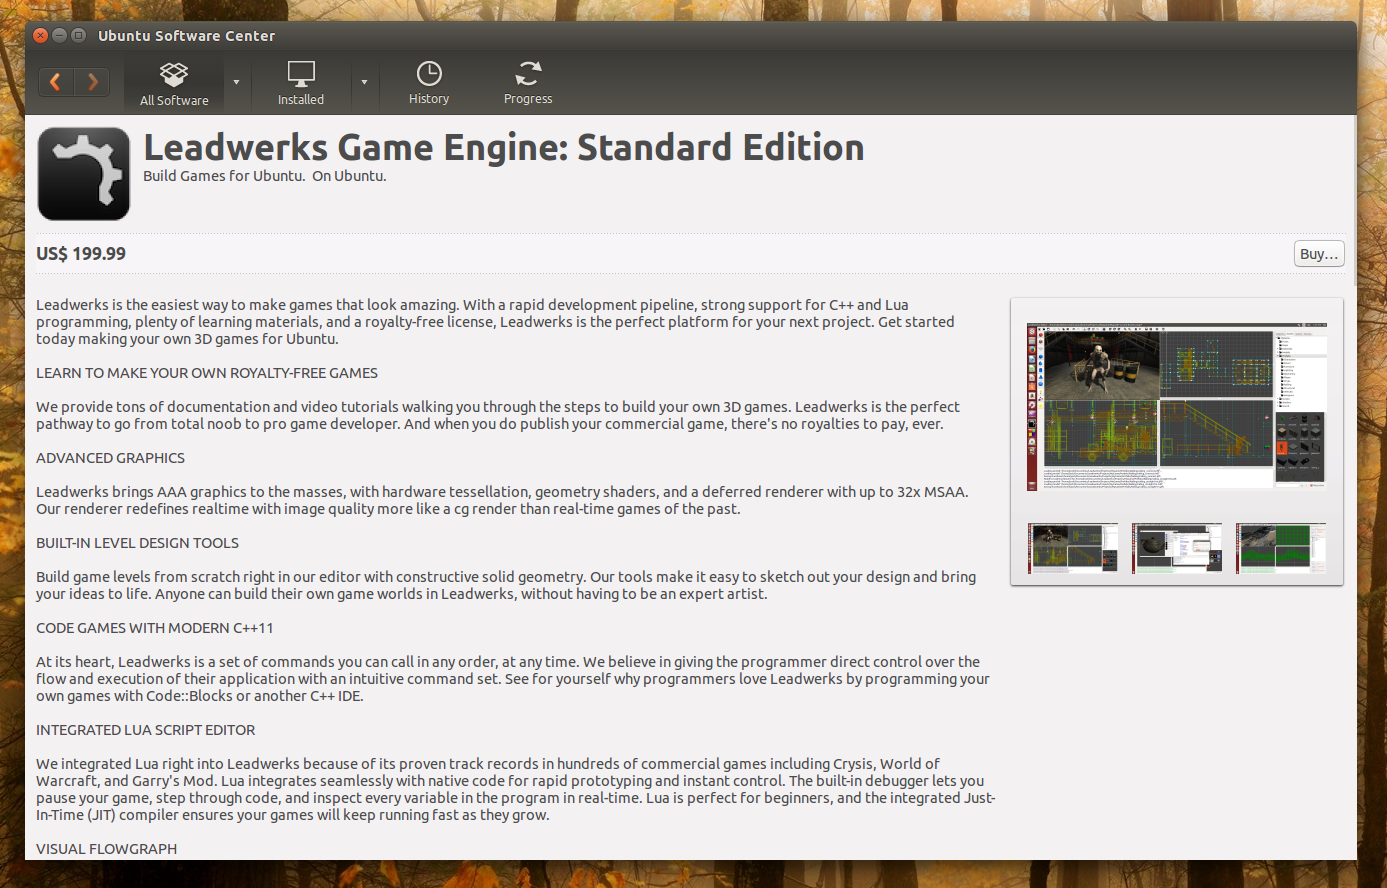 Leadwerks Game Engine Available In Ubuntu Software Center Native Linux Game Development Software Web Upd8 Ubuntu Linux Blog